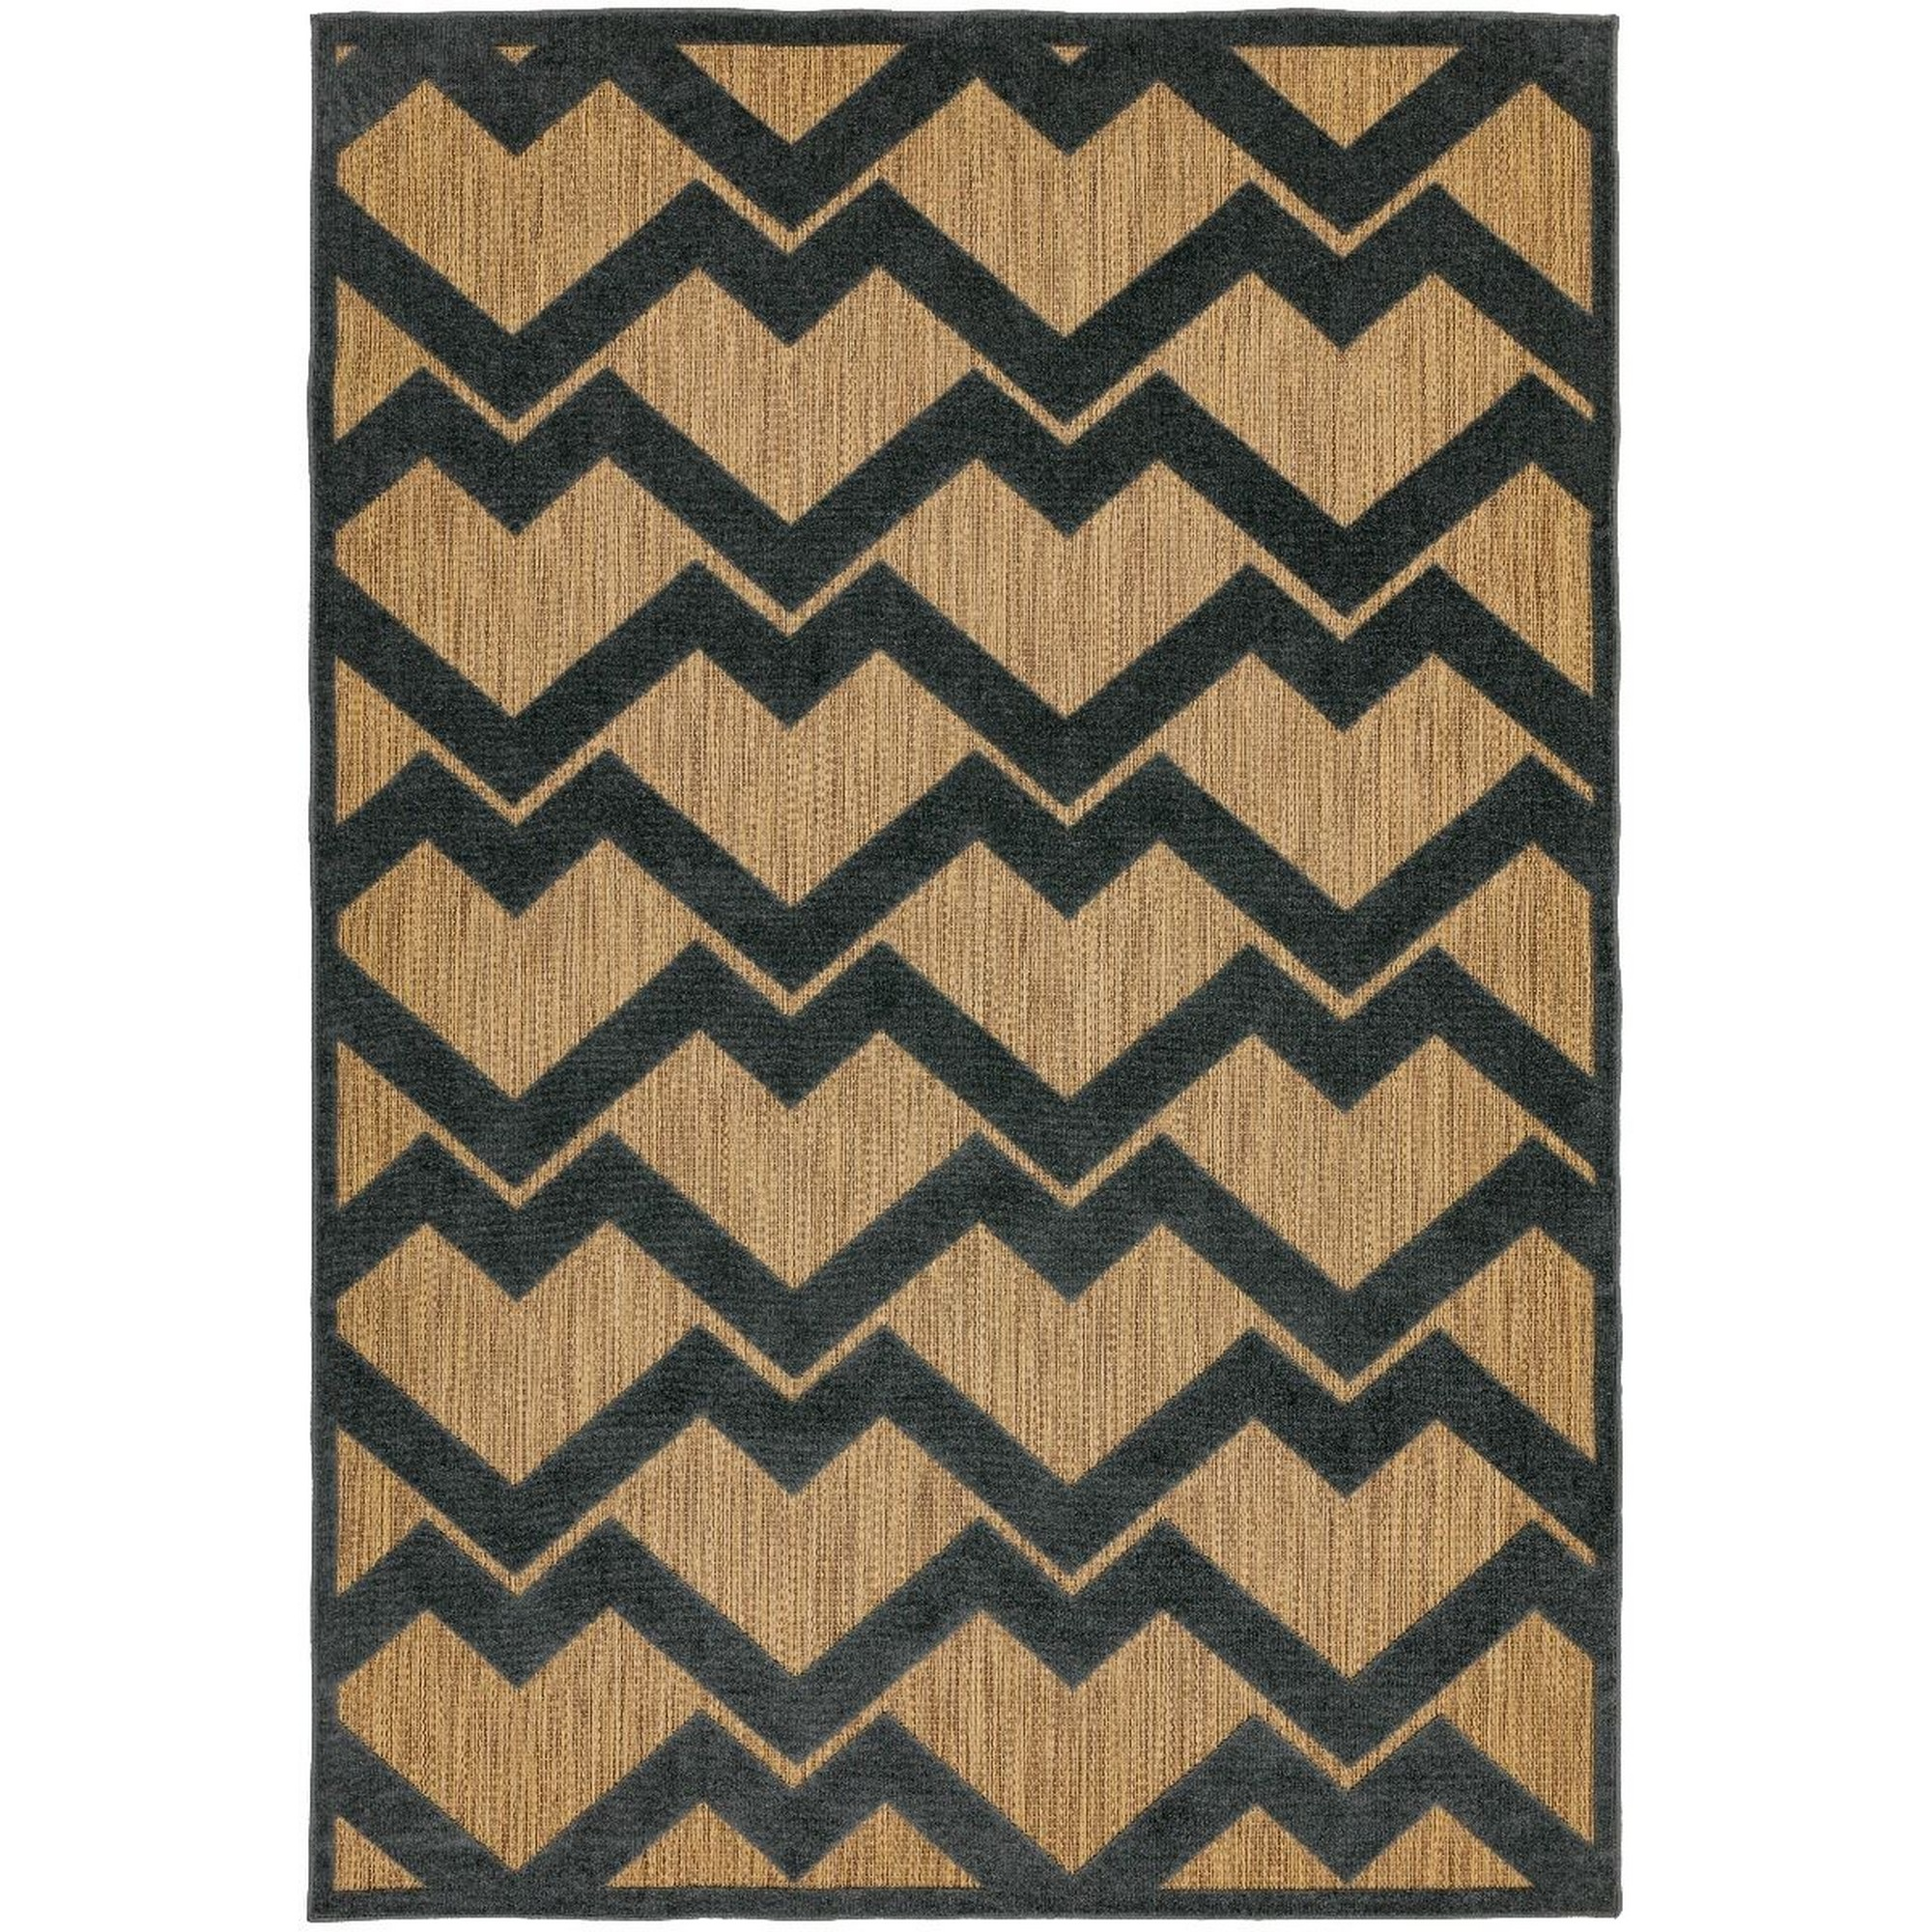 World Map Rug Costco: Plaza PZ03 Rugs In Navy Buy Online From The Rug Seller Uk